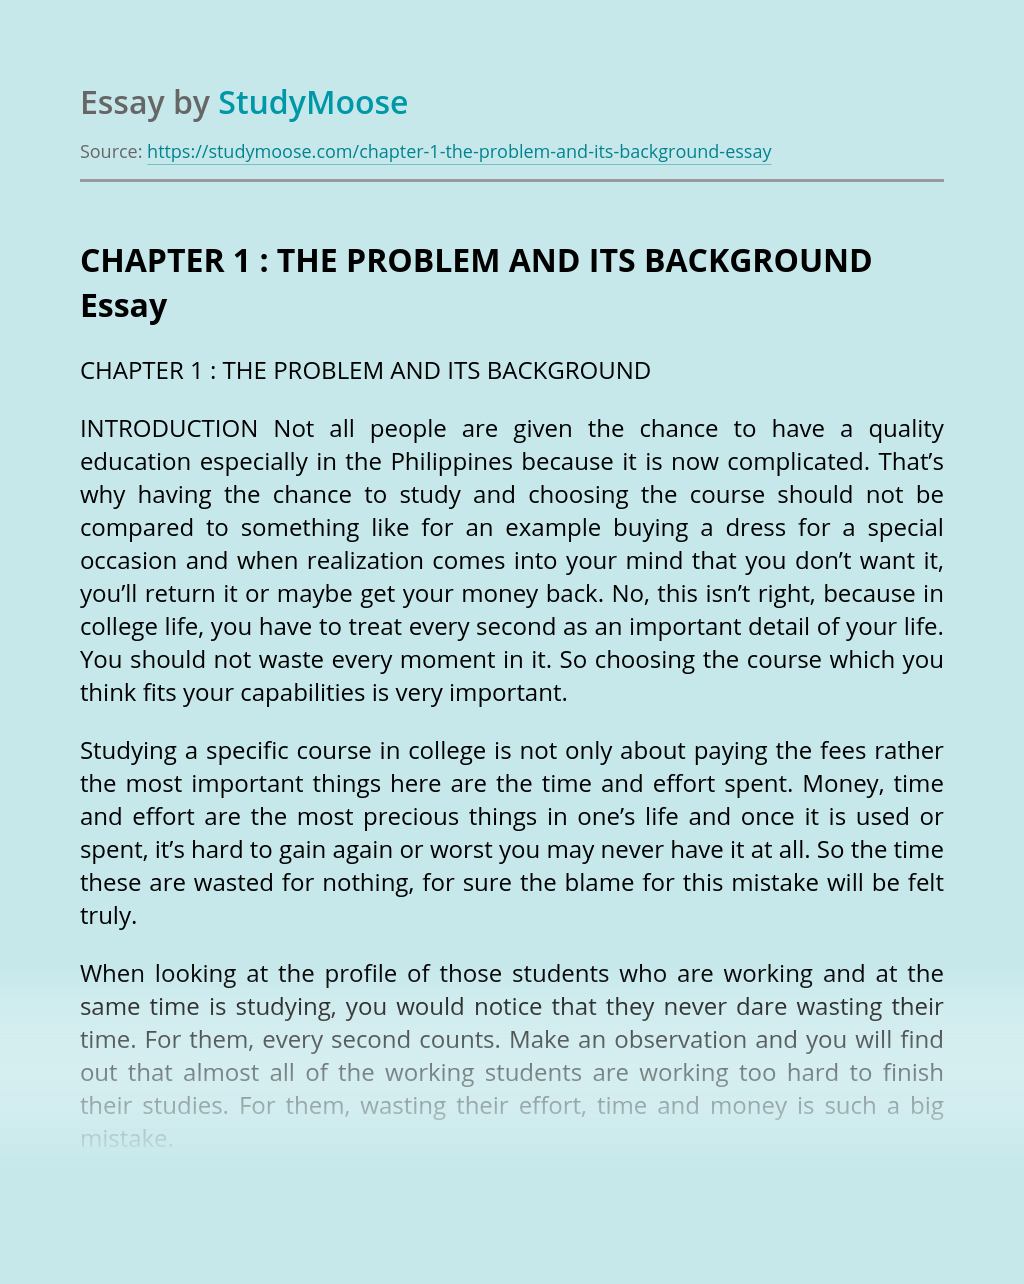 CHAPTER 1 : THE PROBLEM AND ITS BACKGROUND